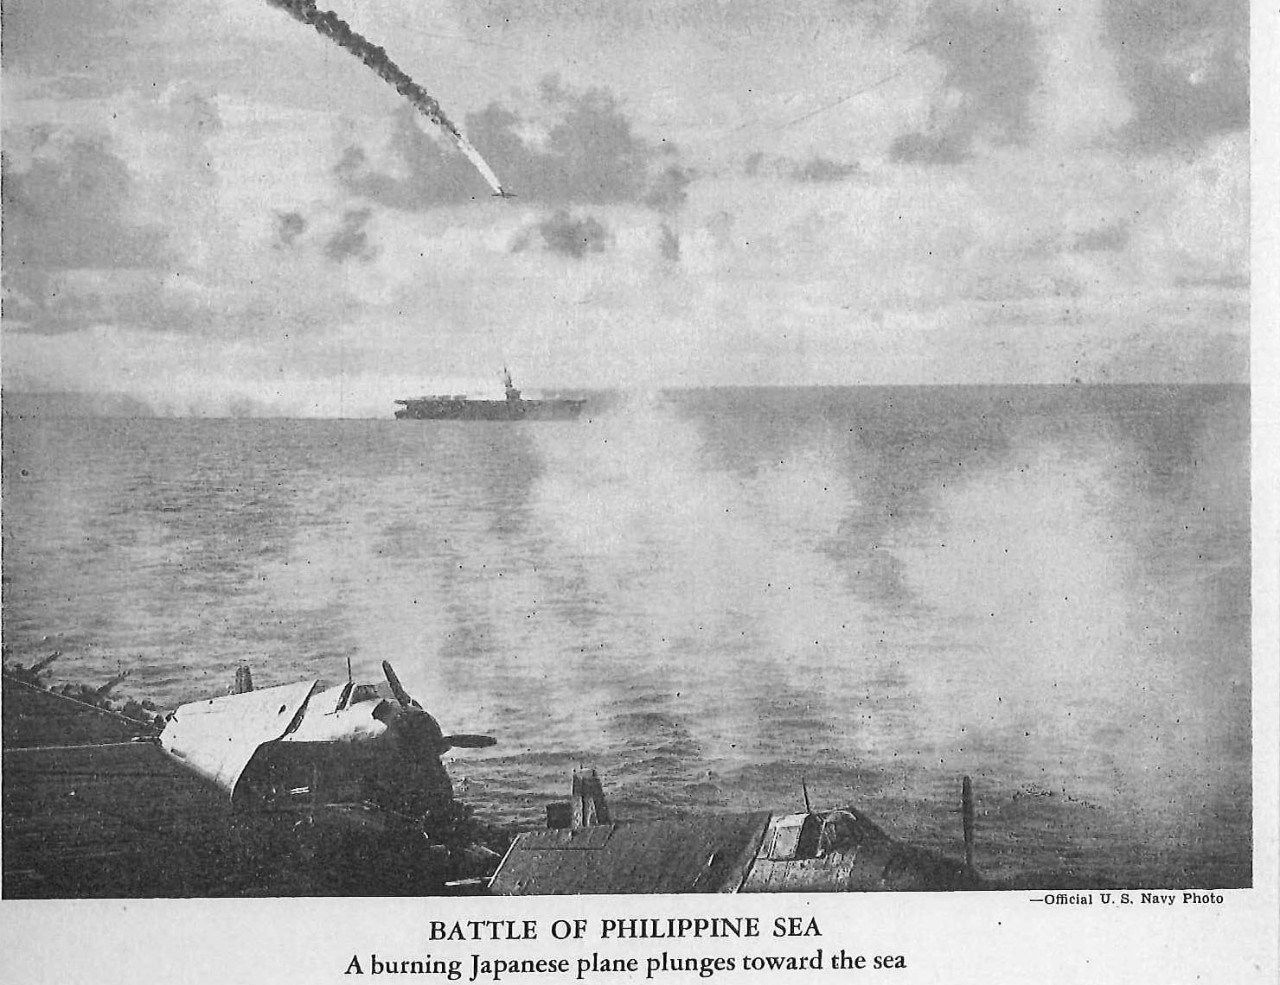 Battle of Philippine Sea, a burning Japanese plane plunges toward the sea